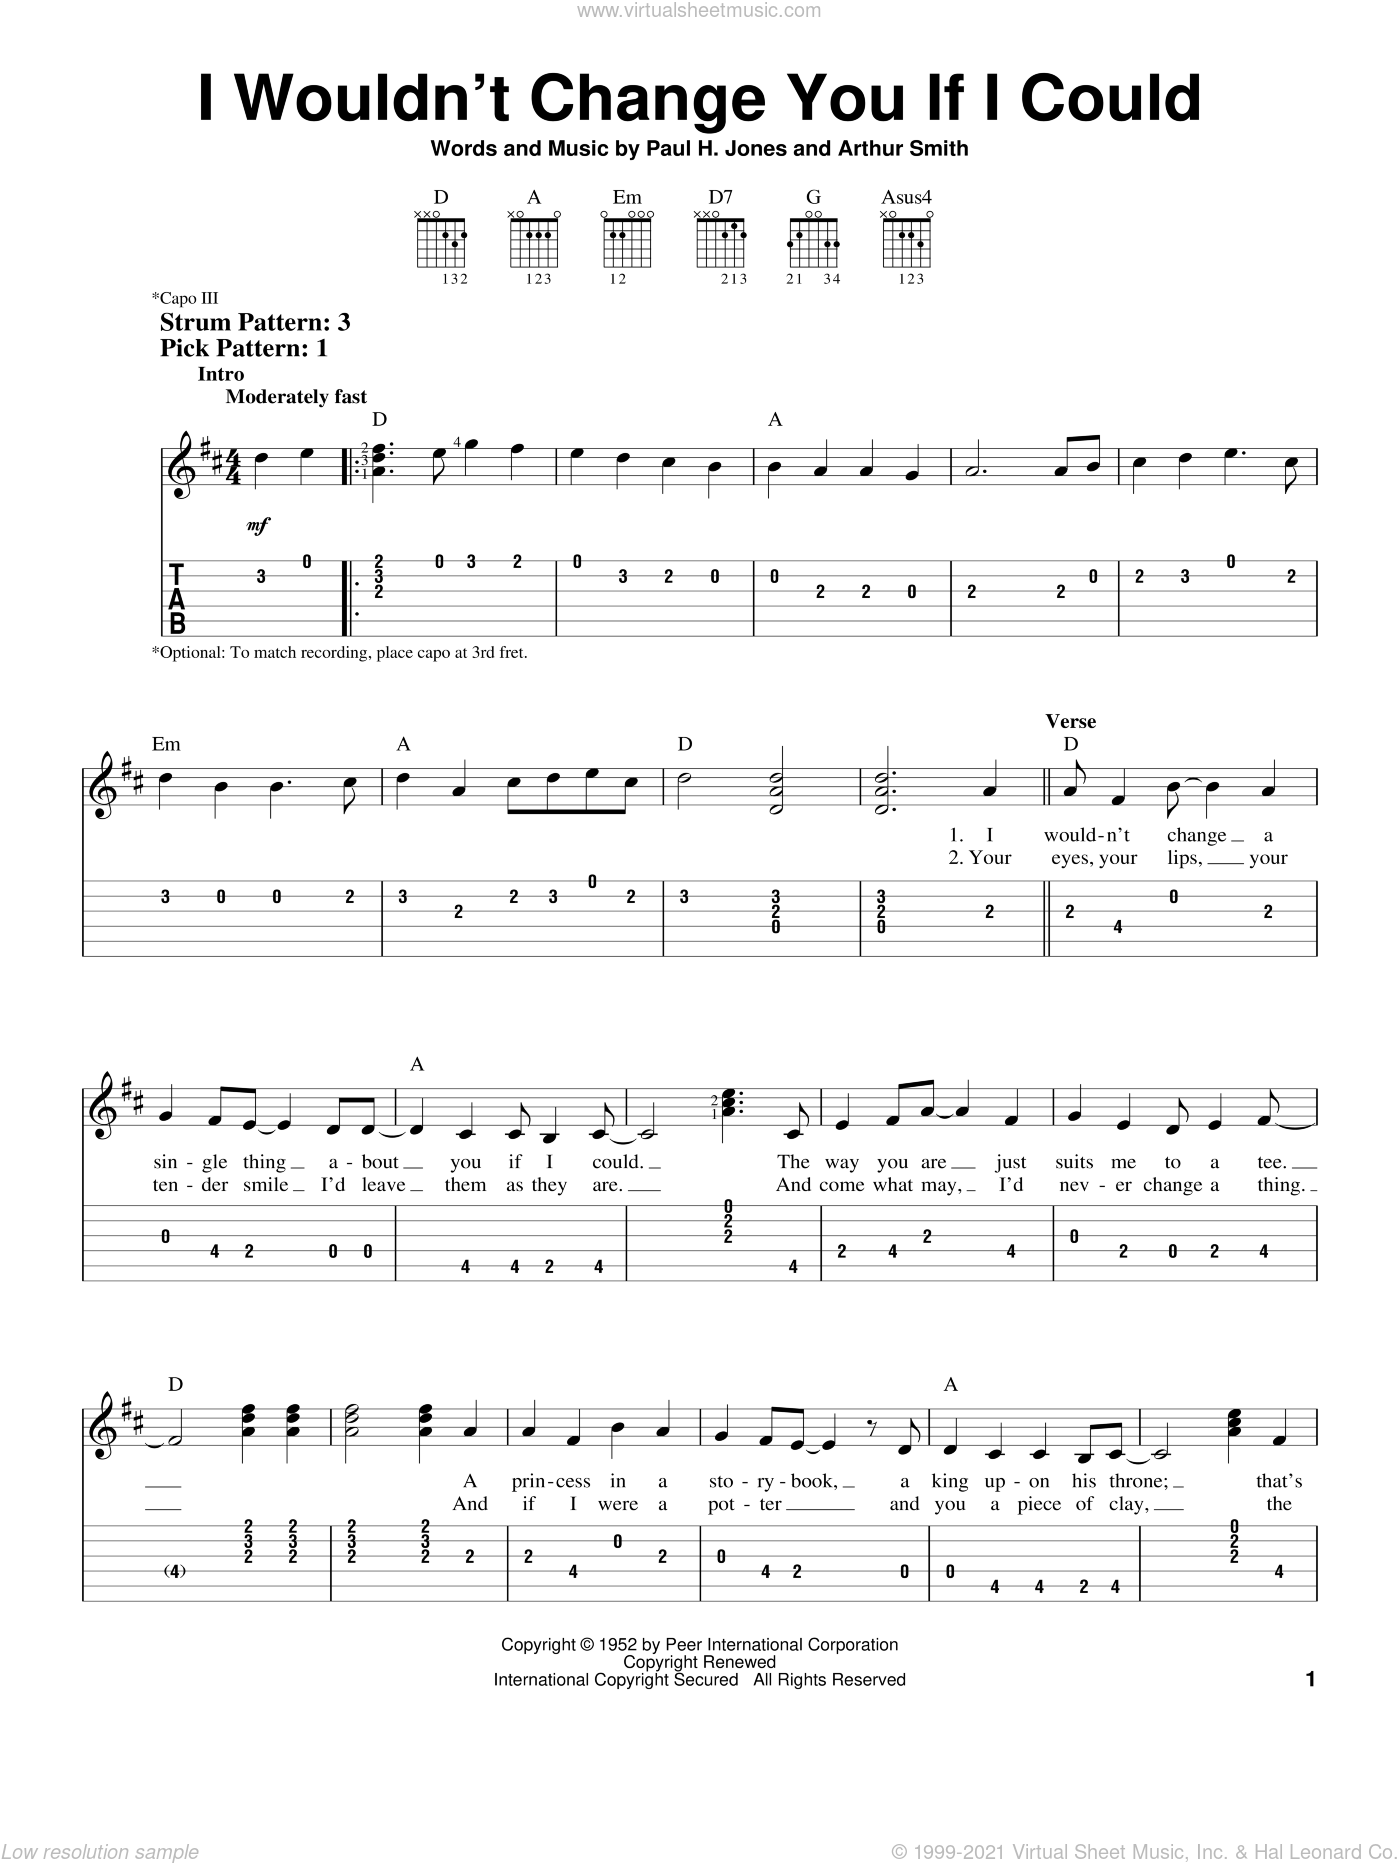 I Wouldn't Change You If I Could sheet music for guitar solo (easy tablature) by Paul H. Jones, Ricky Skaggs and Arthur Smith. Score Image Preview.